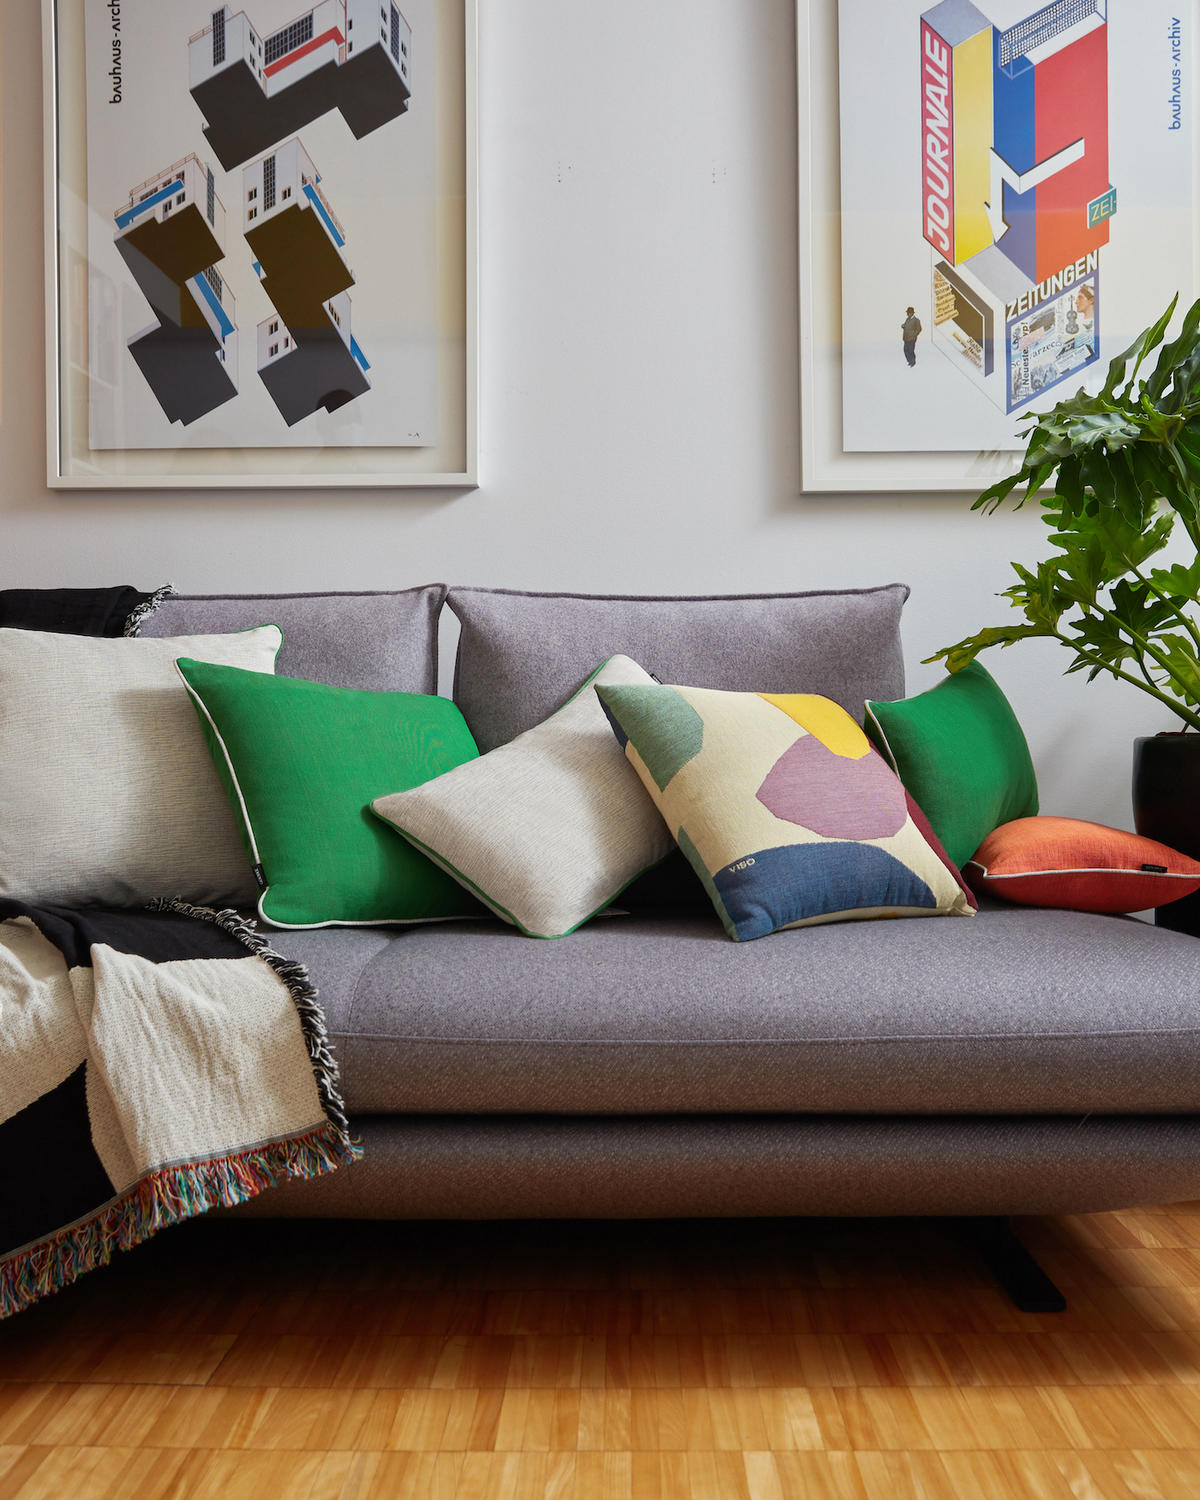 New debuts from Roche Bobois, Kravet Couture's collaboration with Linherr Hollingsworth, and more